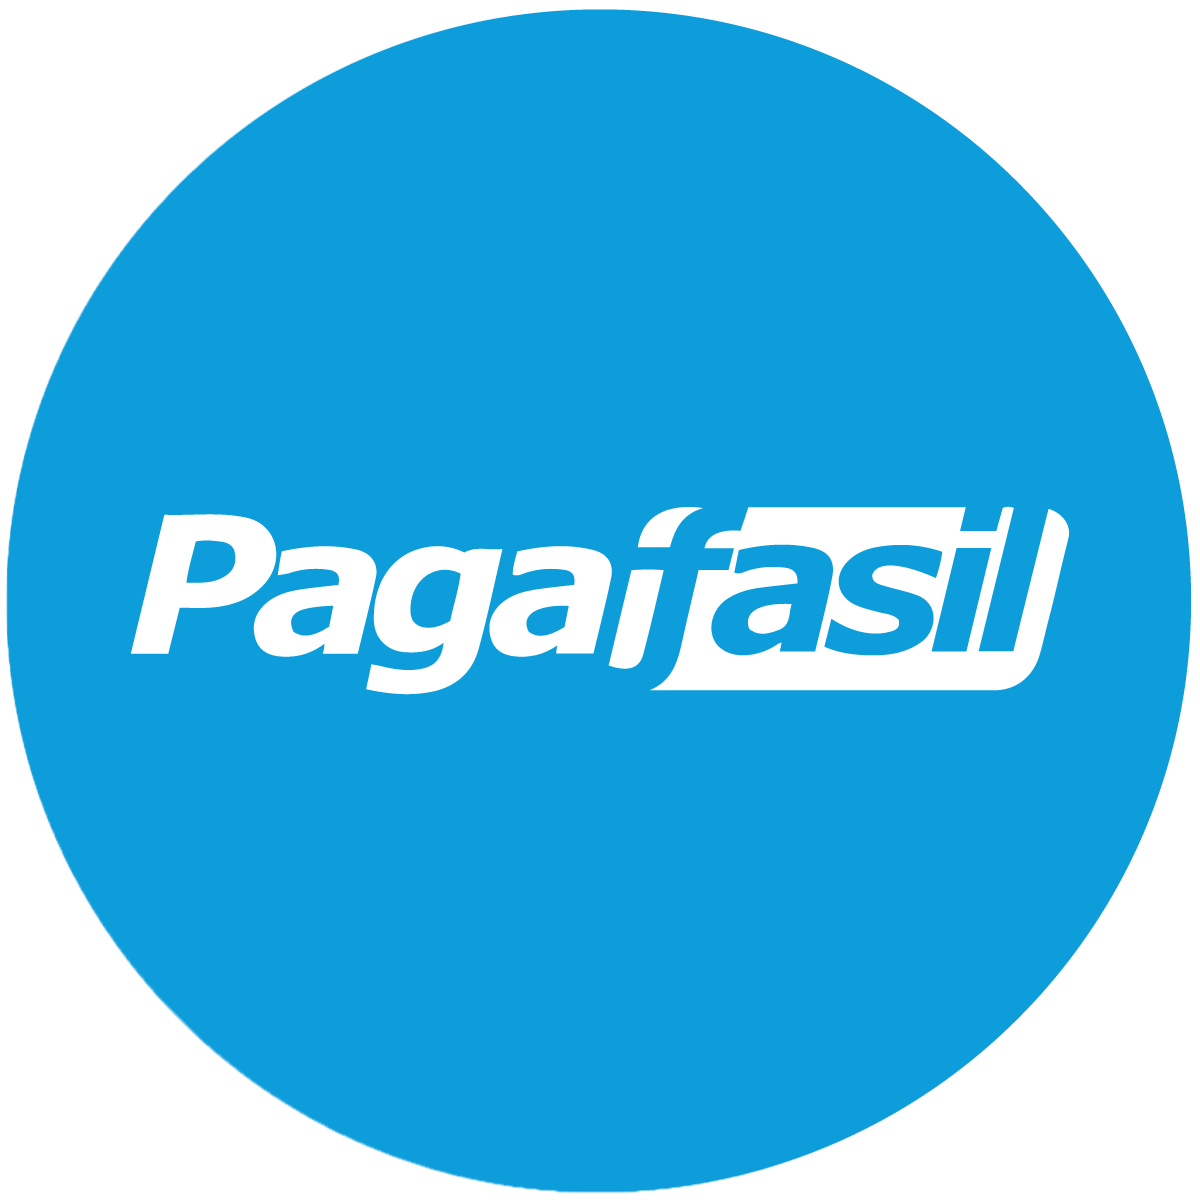 Pagafásil payment points